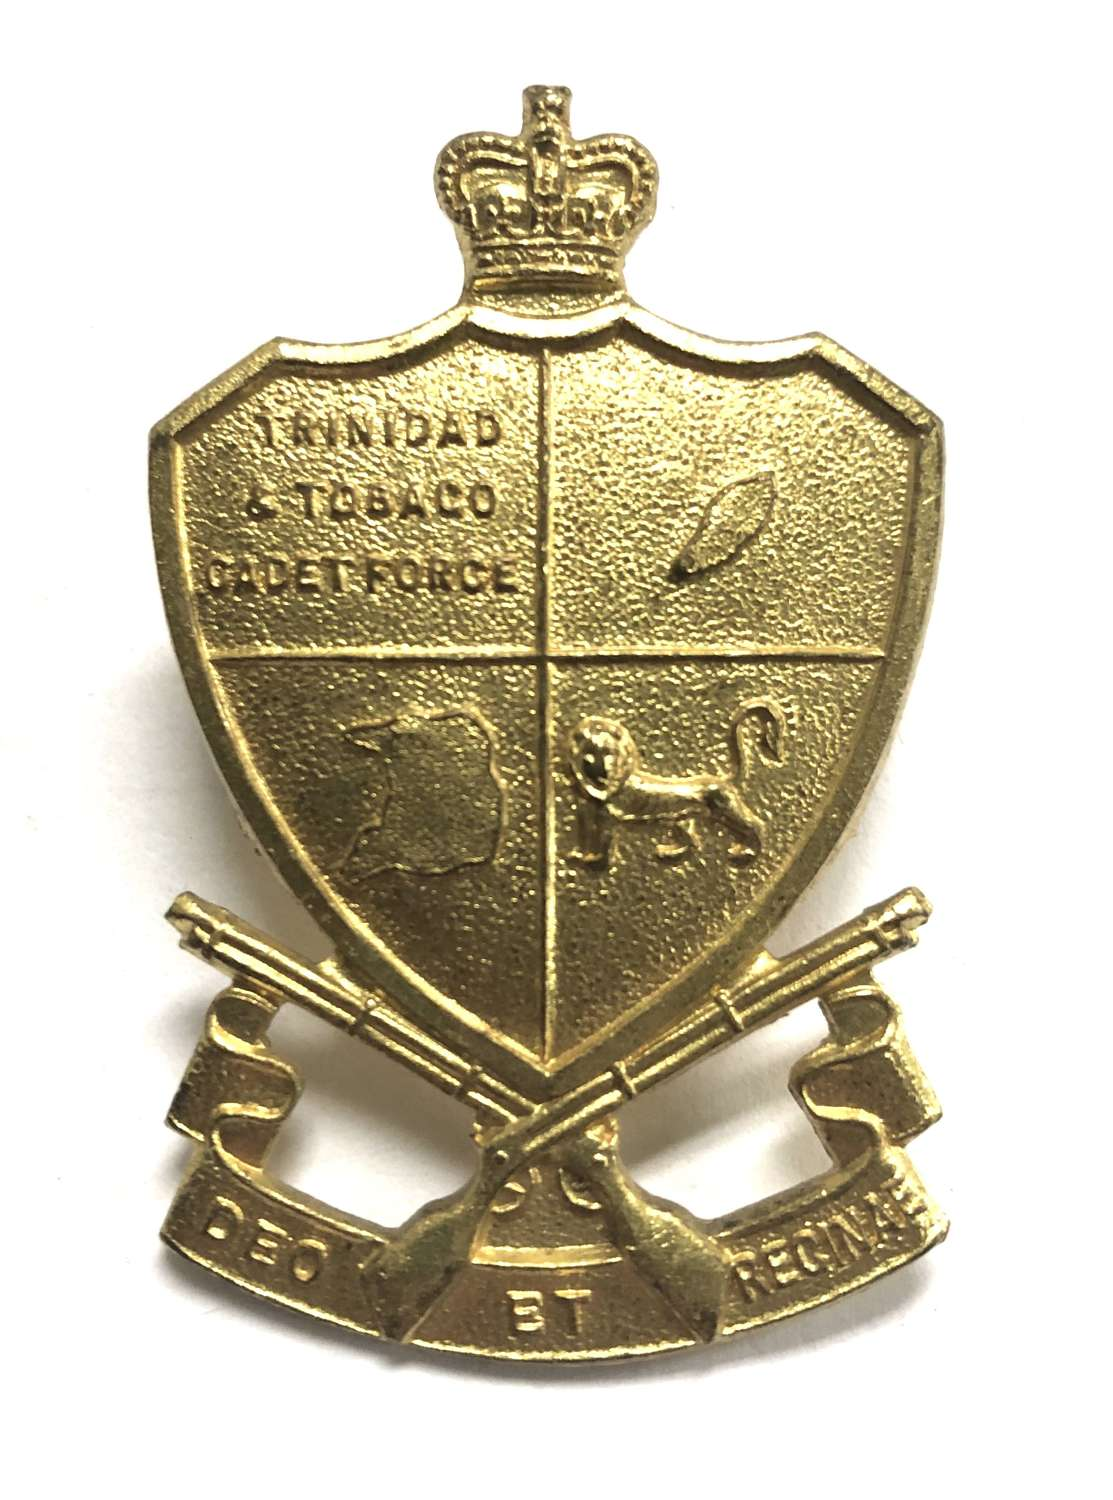 Trinidad & Tobago Cadet Force cap badge